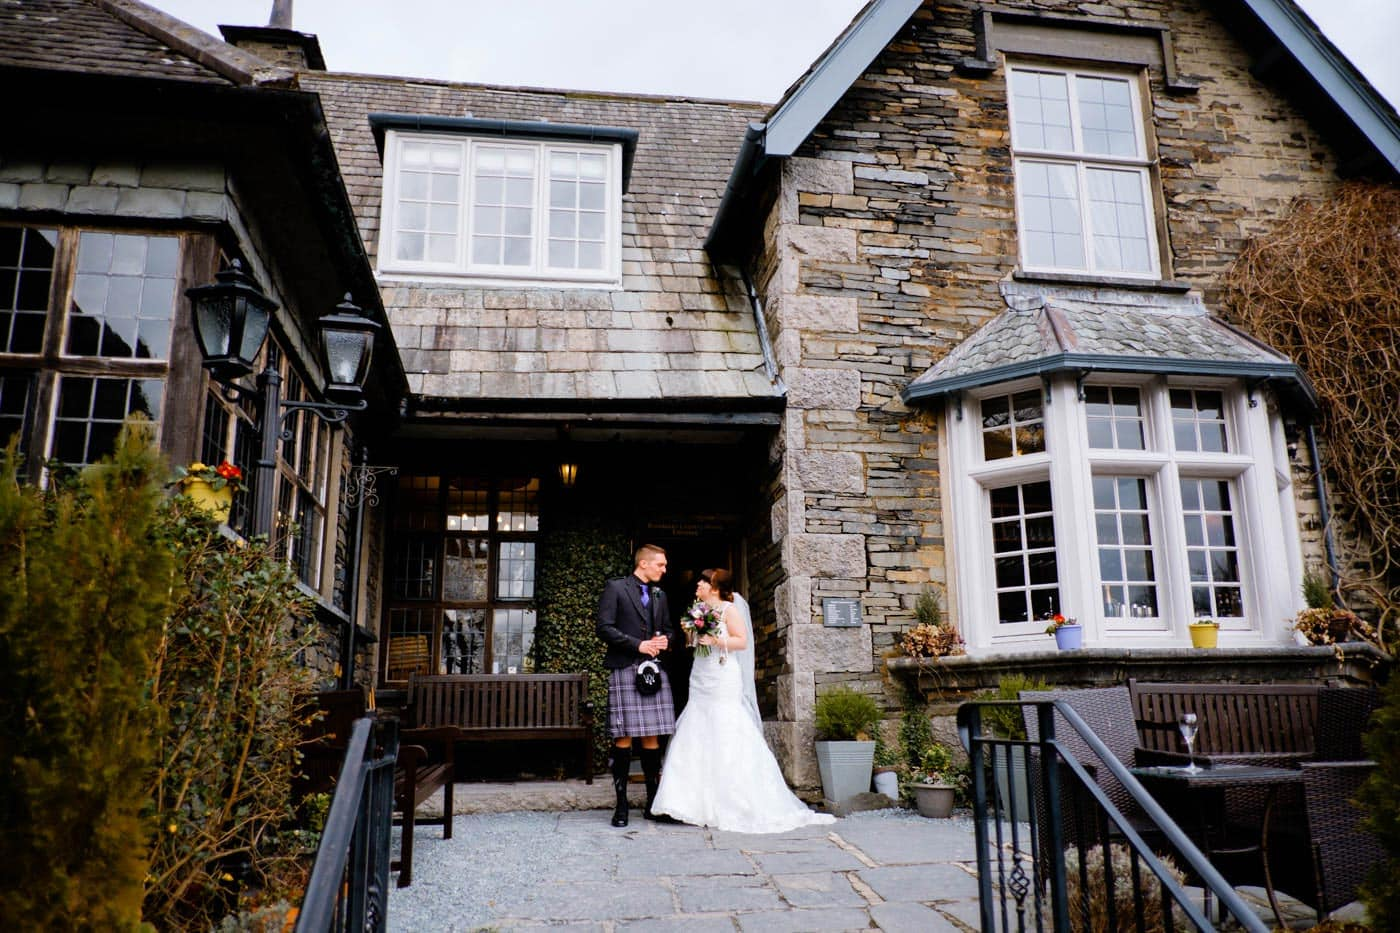 Scottish bride and groom waiting outside Broadoaks Country House by Lake District wedding photographer Clive Blair Photography